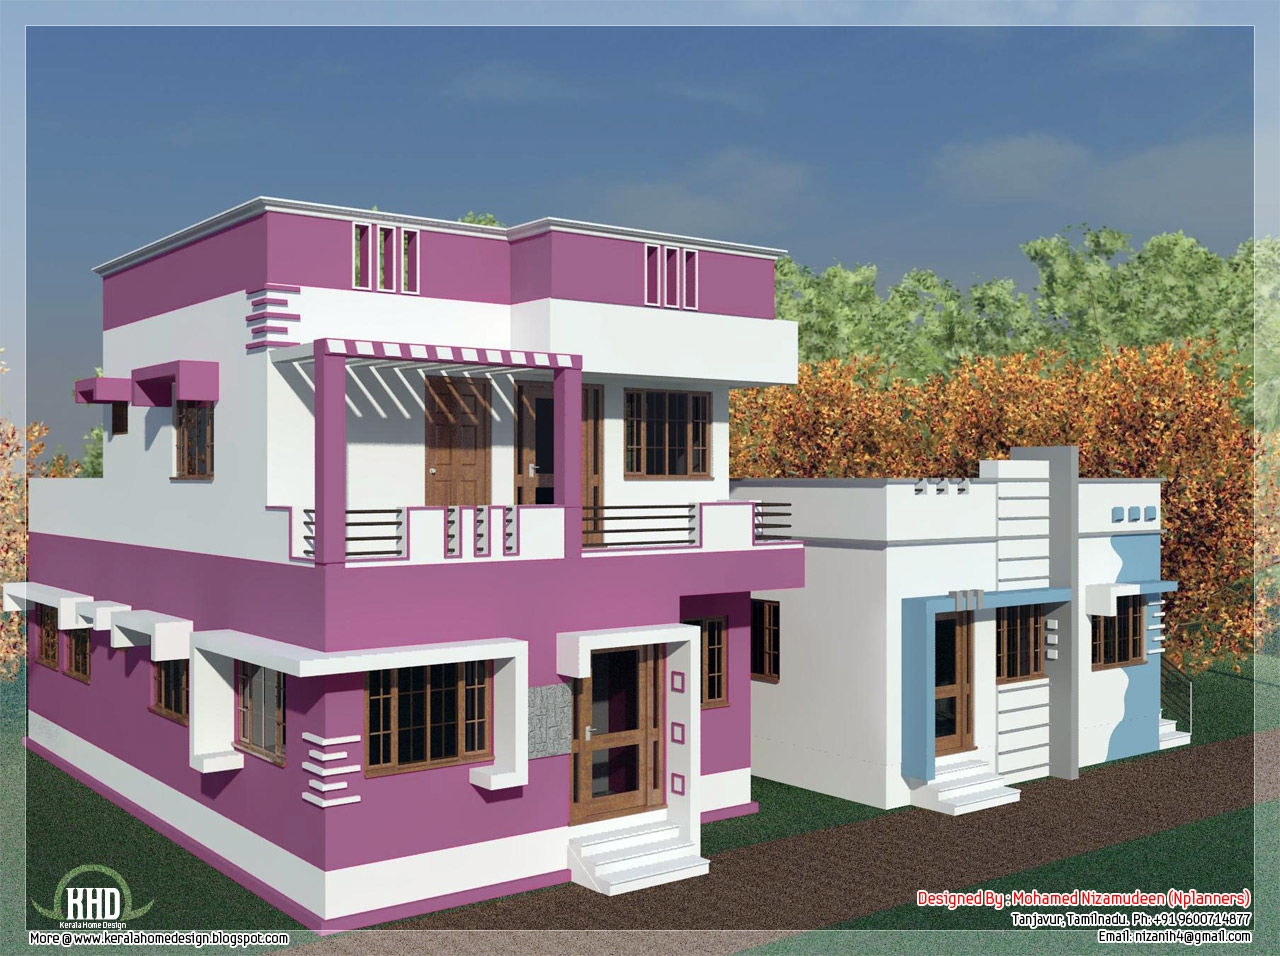 Lovely Inspirational Home Design Plans Indian Style With Vastu Ideas - Home for Home Design Plans With Photos